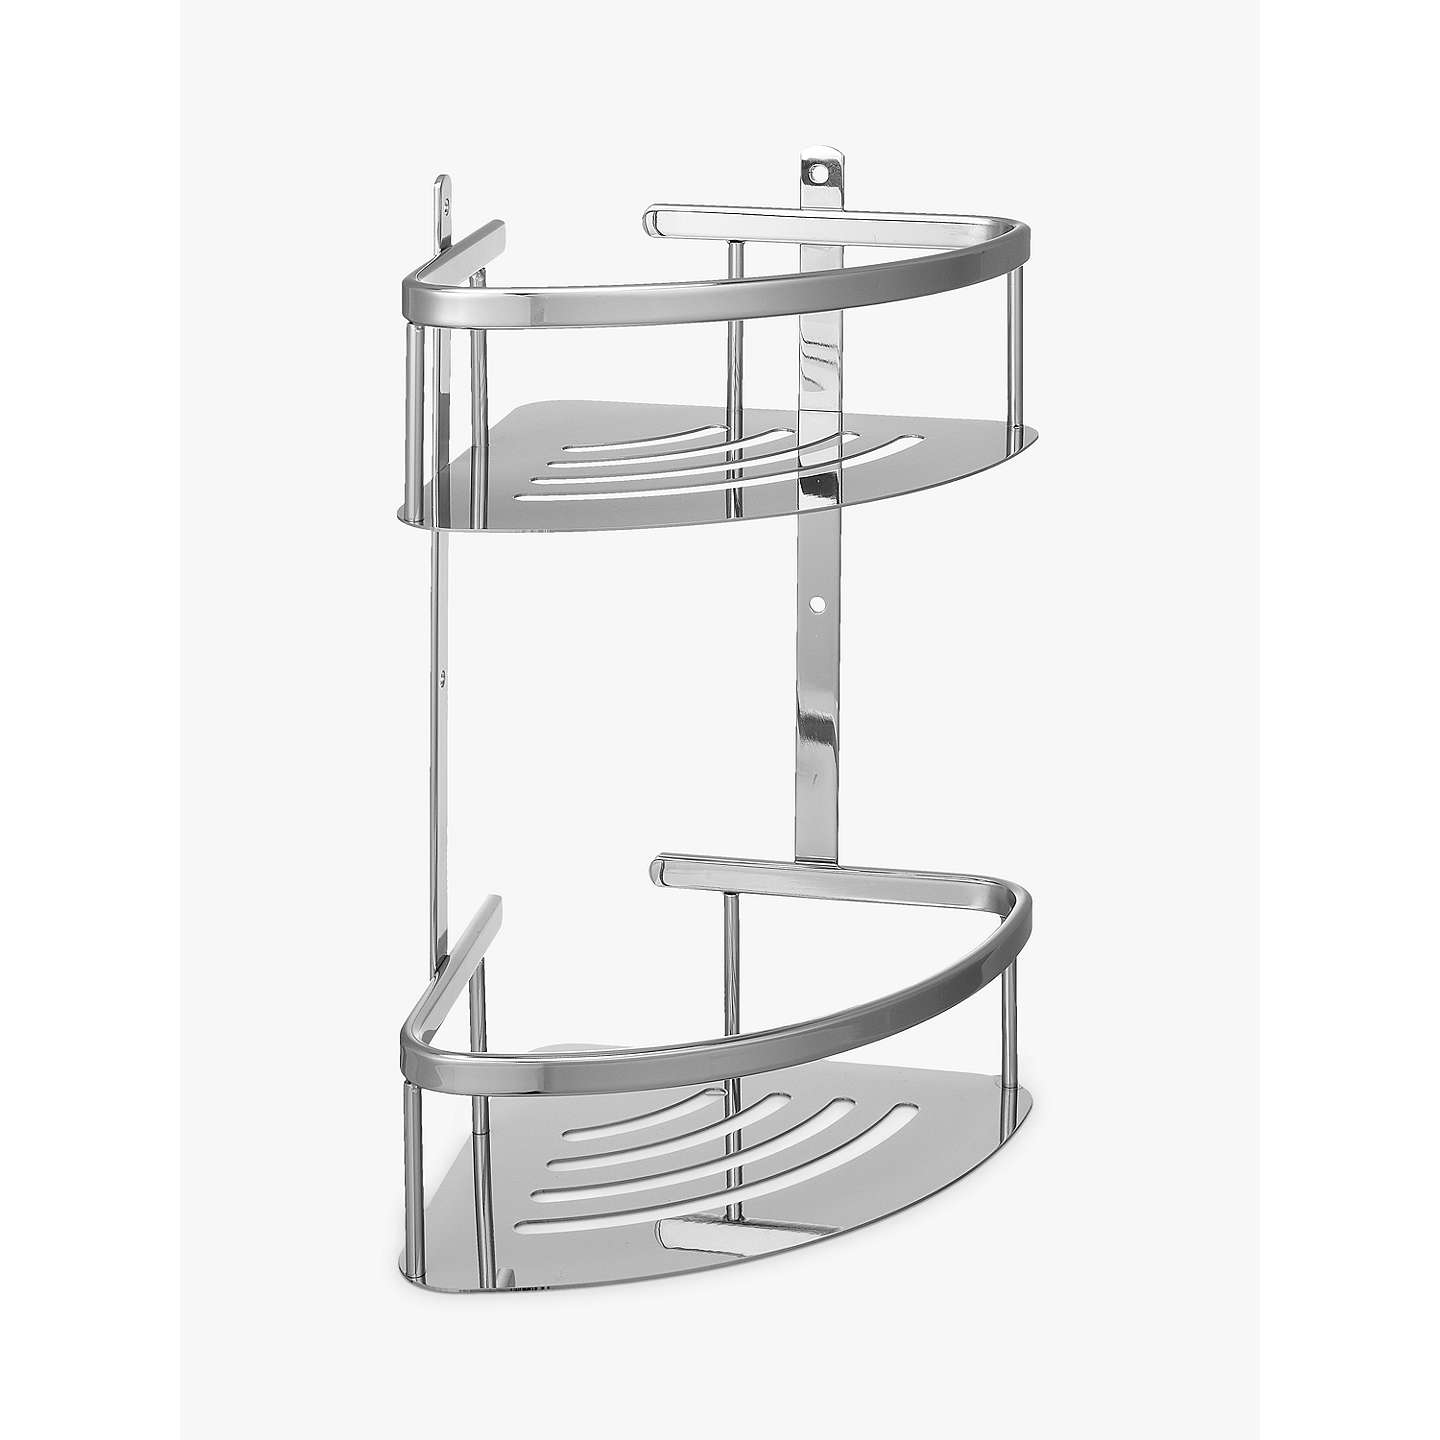 John Lewis Contemporary Brass And Stainless Steel 2 Tier Corner Shower Basket At John Lewis